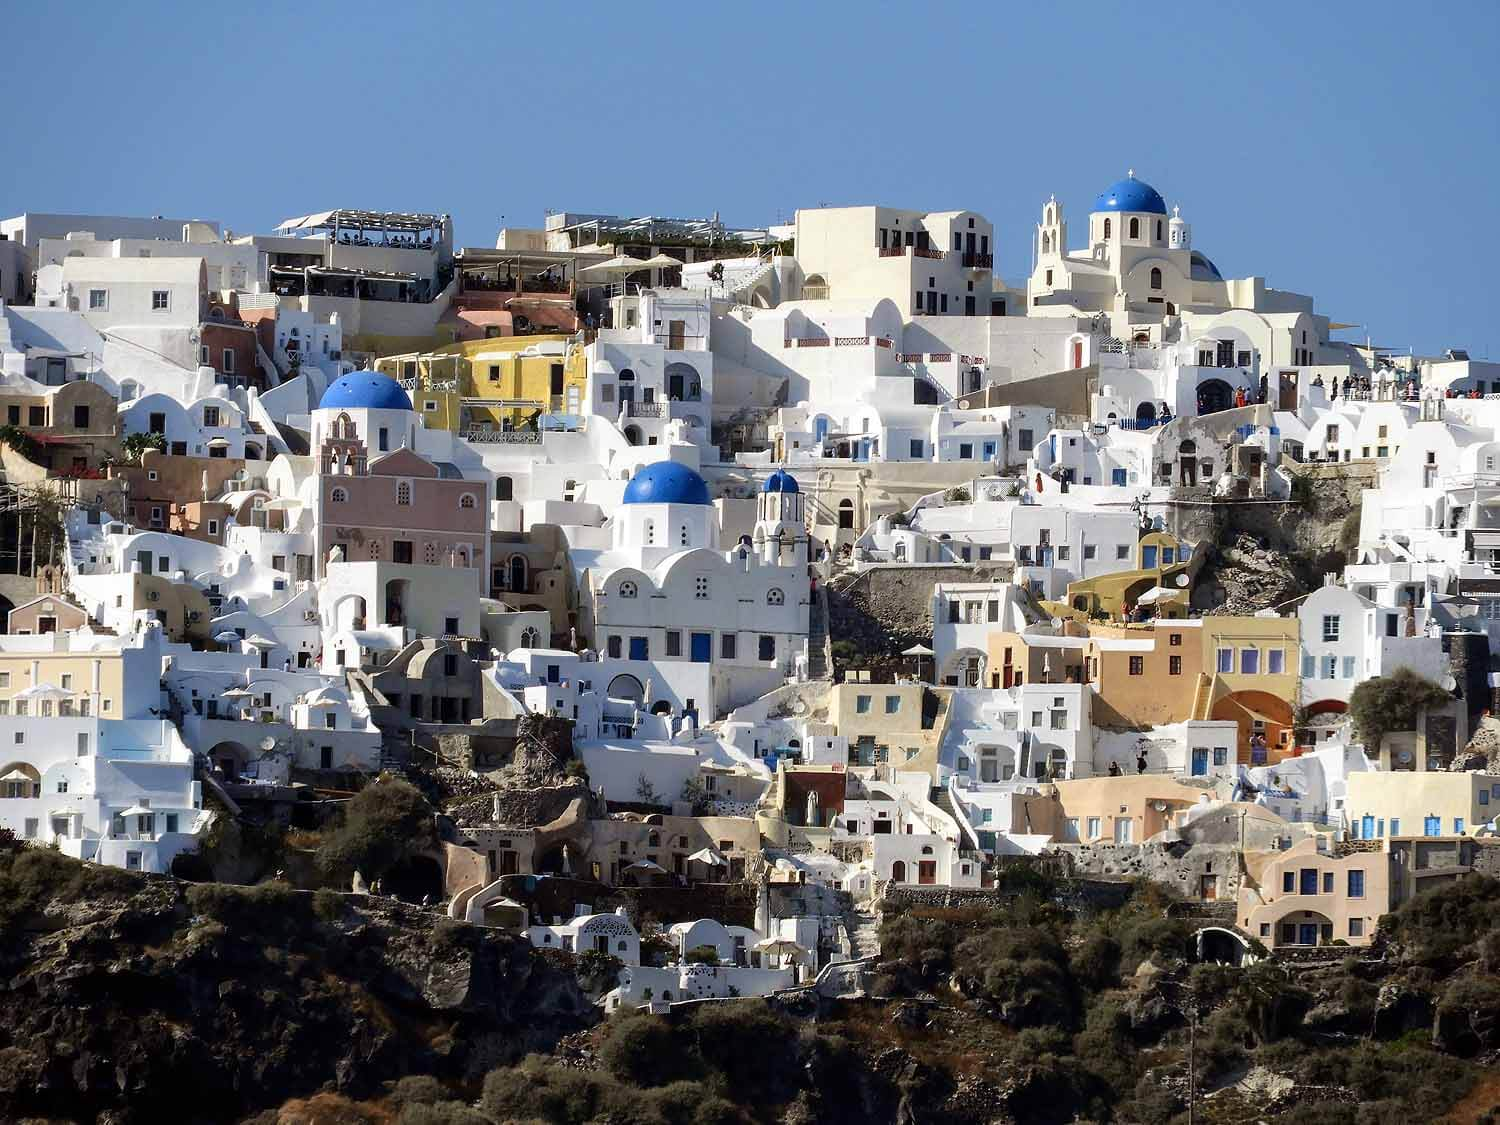 greece-santorini-cliff-village-pearl-of-mediterranean.jpg